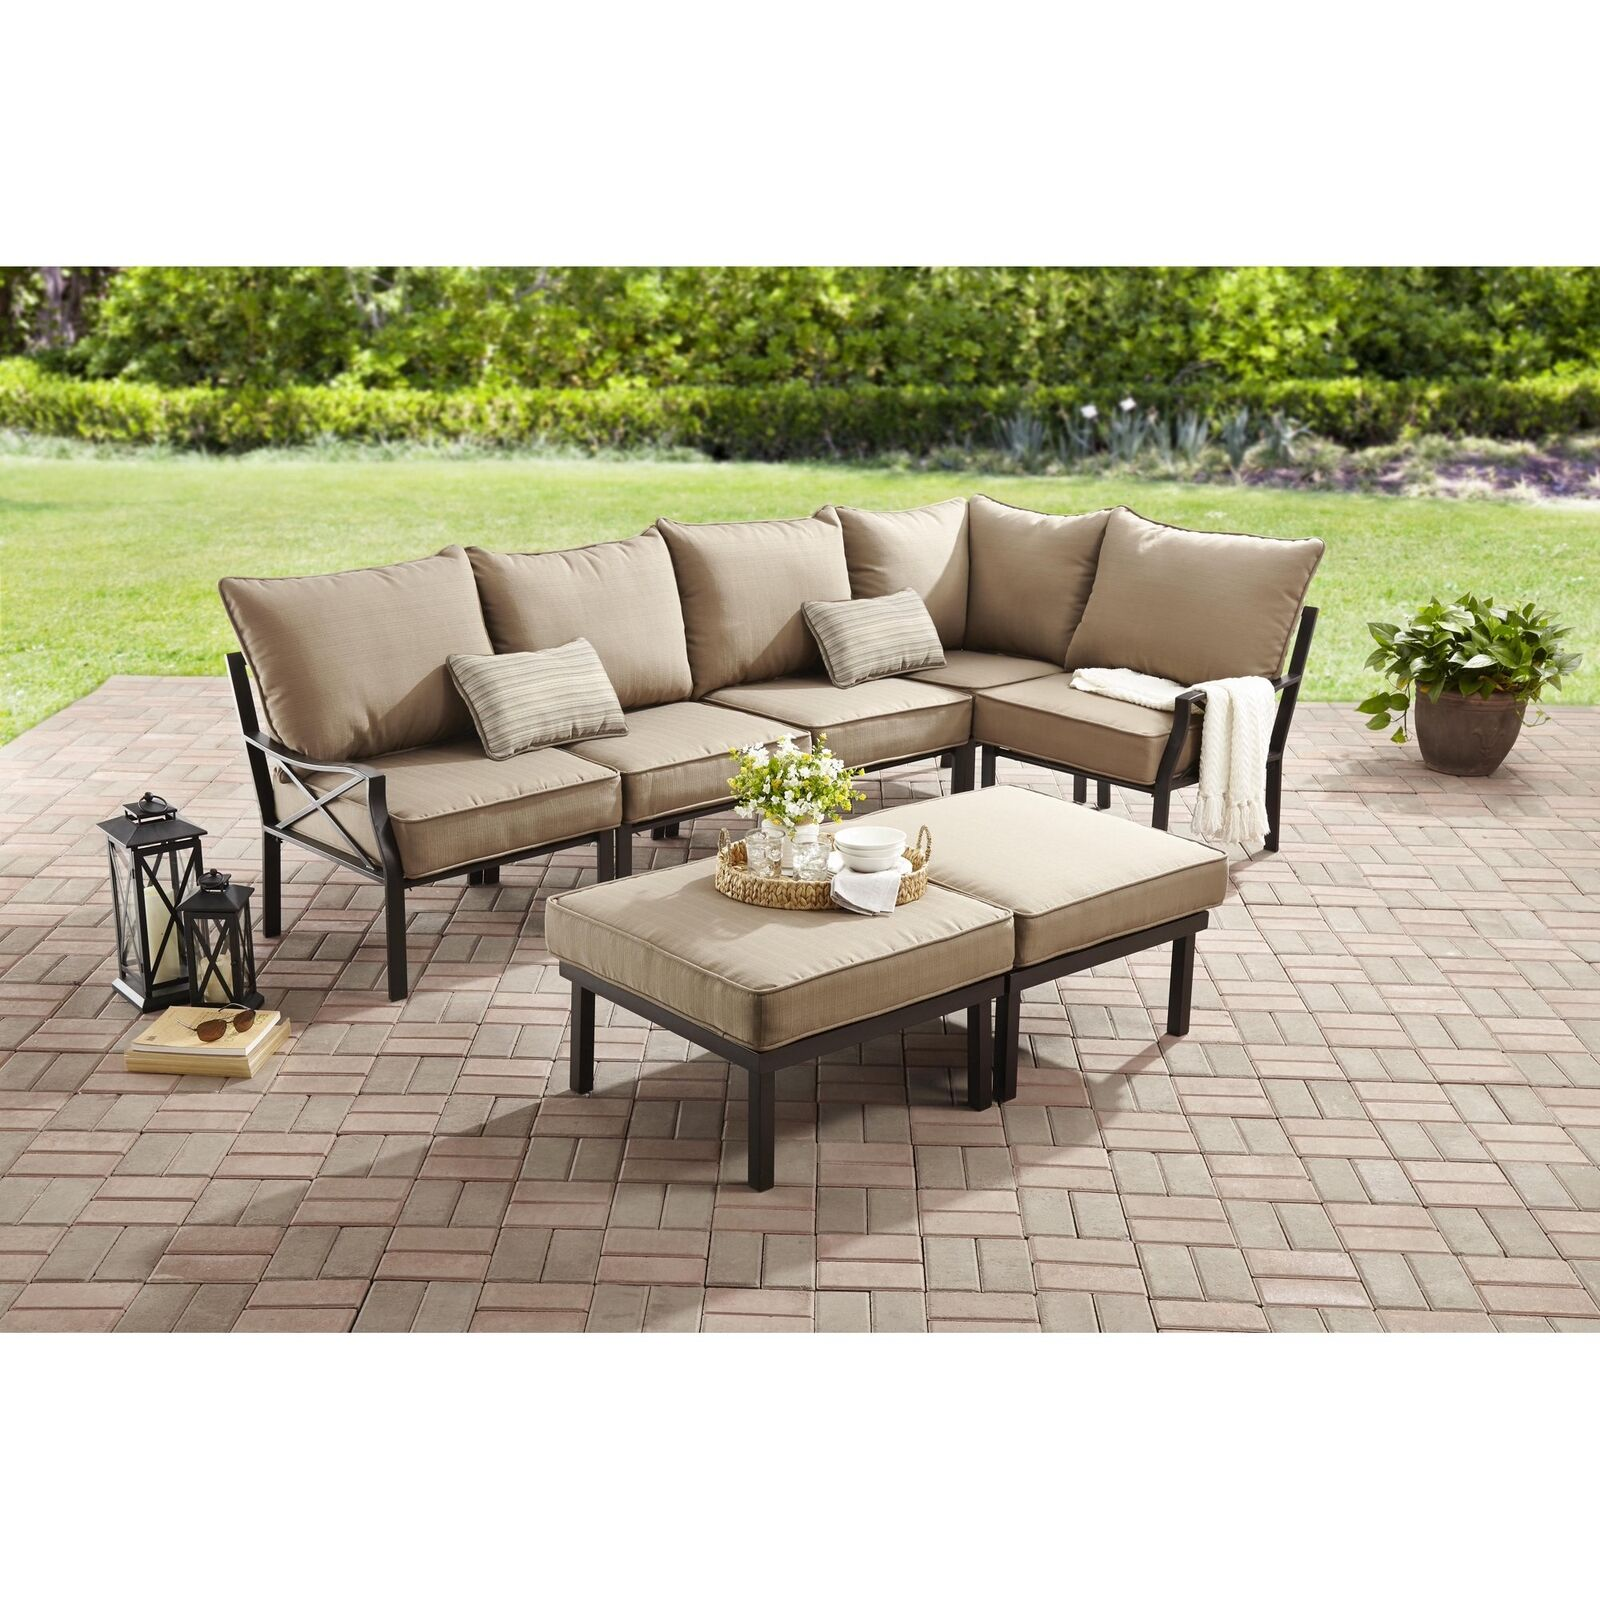 Details about Patio Furniture Set Outdoor Sofa Bench Foot Stool w/ Cushion  Ottoman 7-Piece